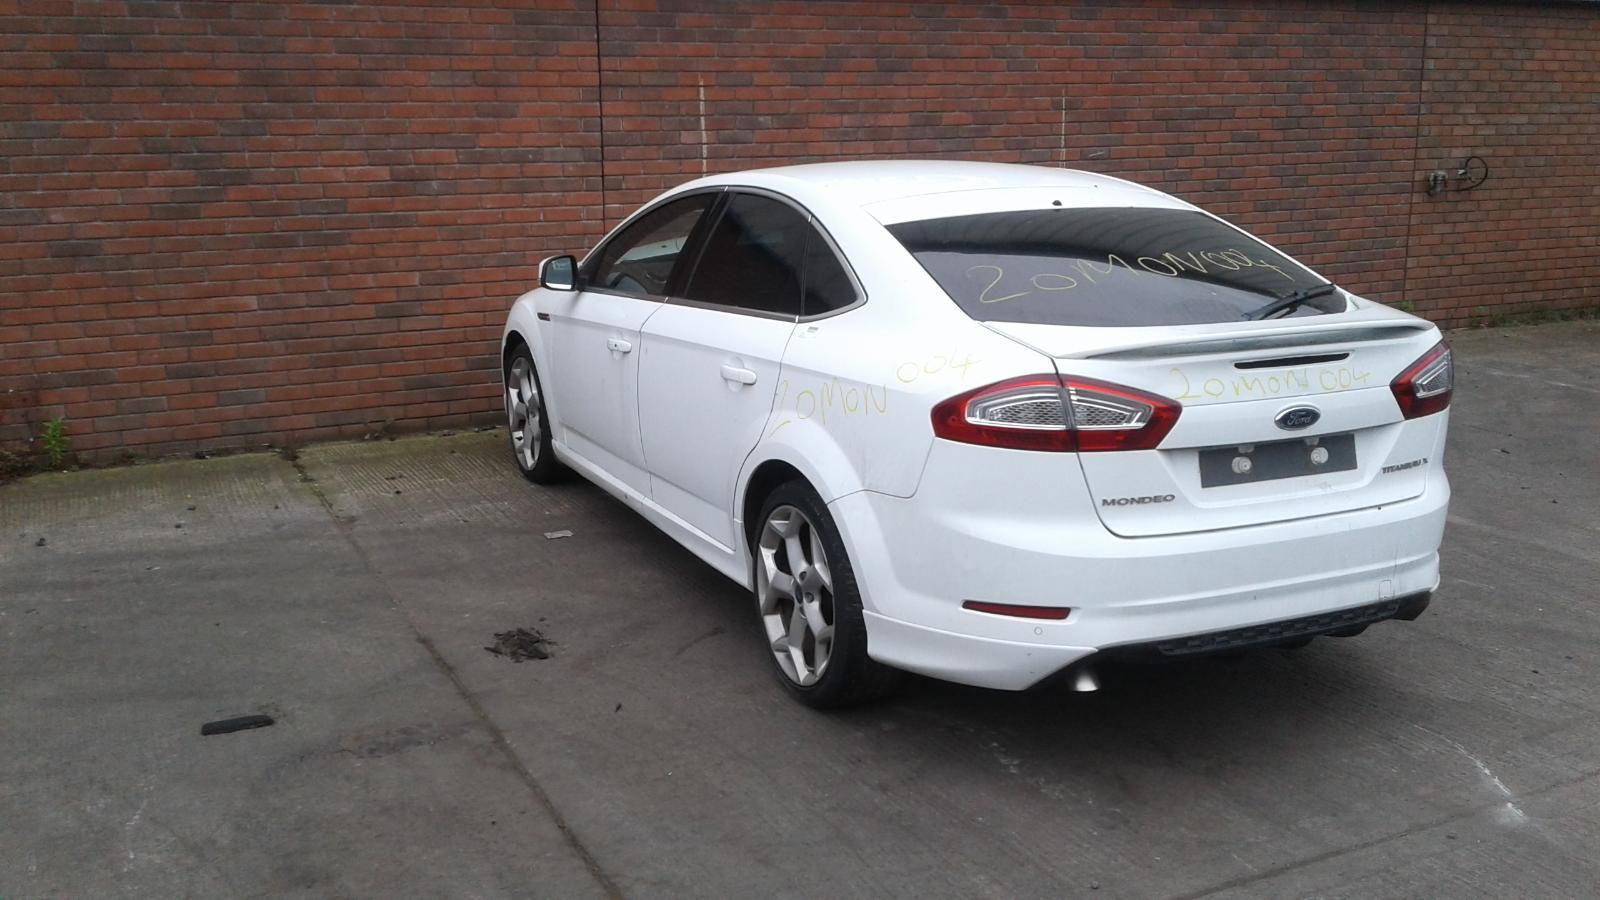 2014 FORD MONDEO Image